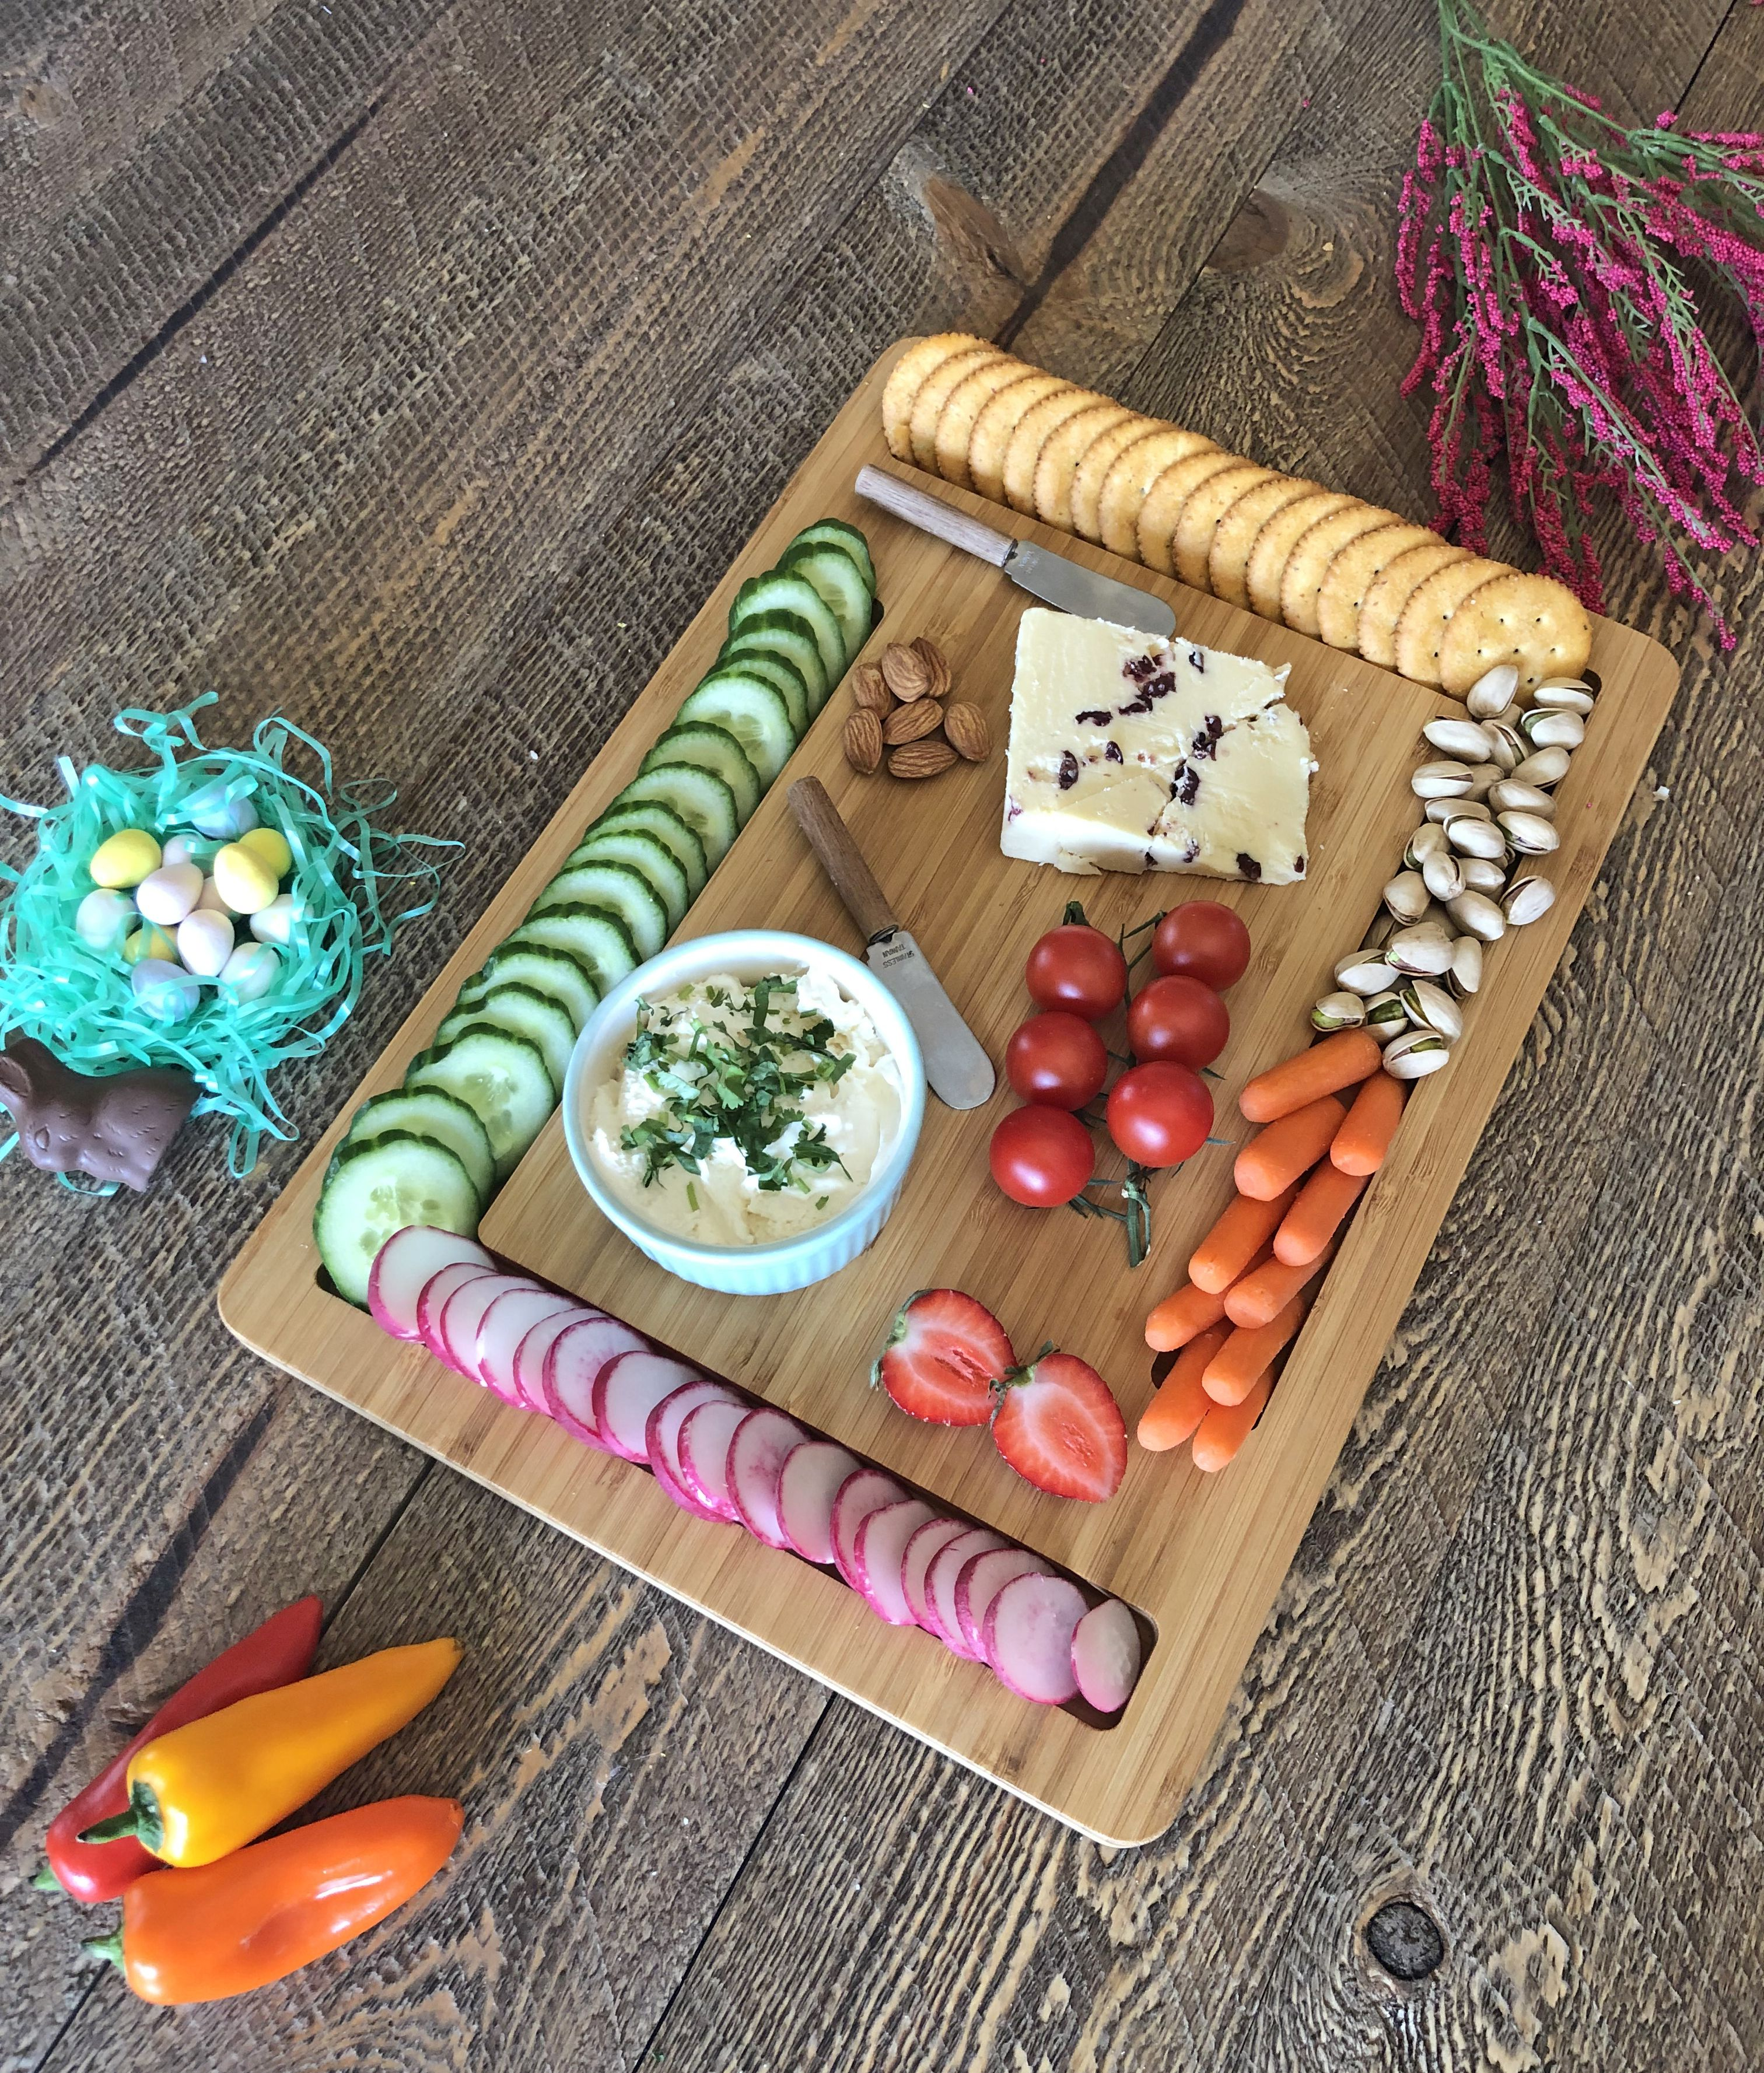 Cheese and crackers boardedge serving board etsy